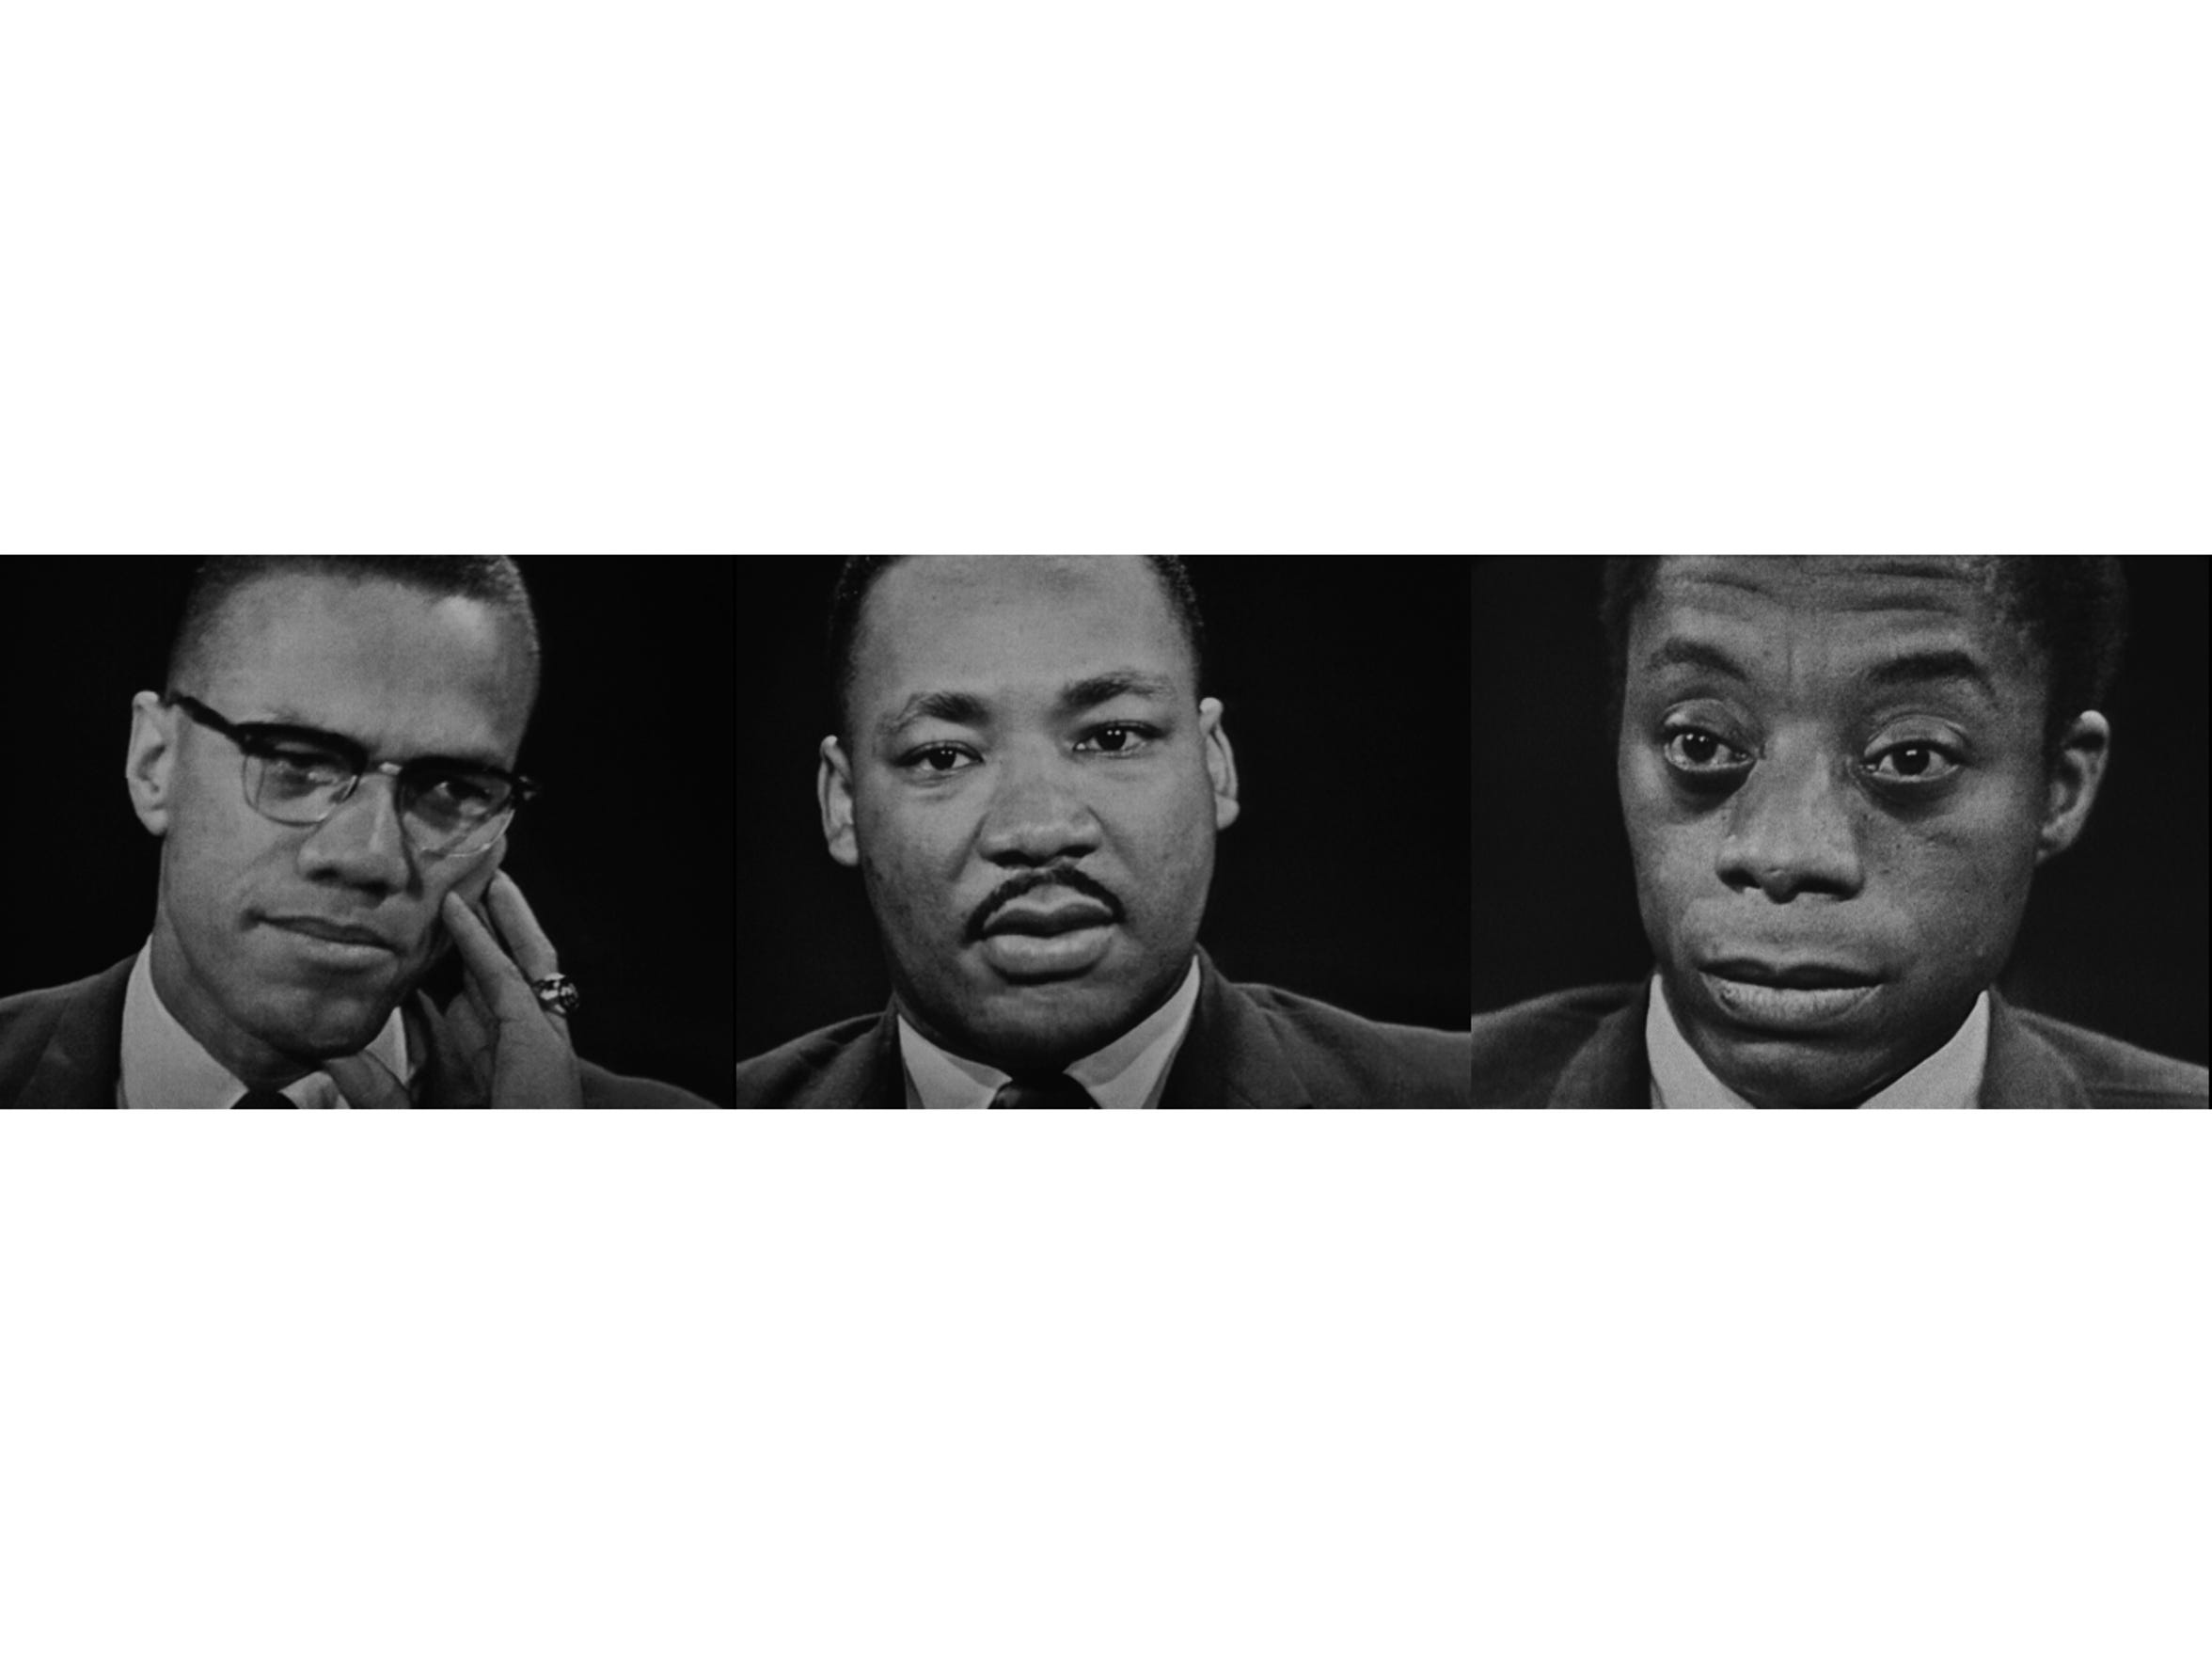 Malcolm X, Martin Luther King Jr. and James Baldwin